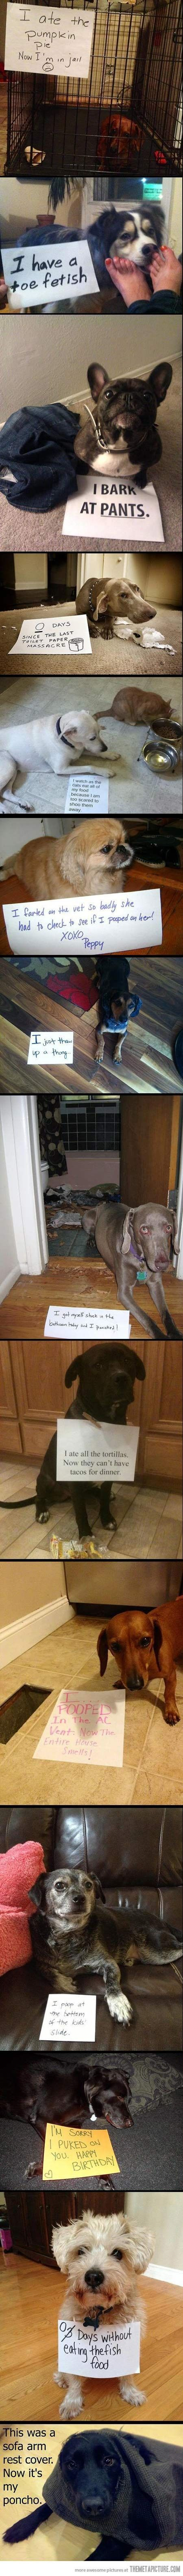 dog shaming at its finest= hysterical laughter